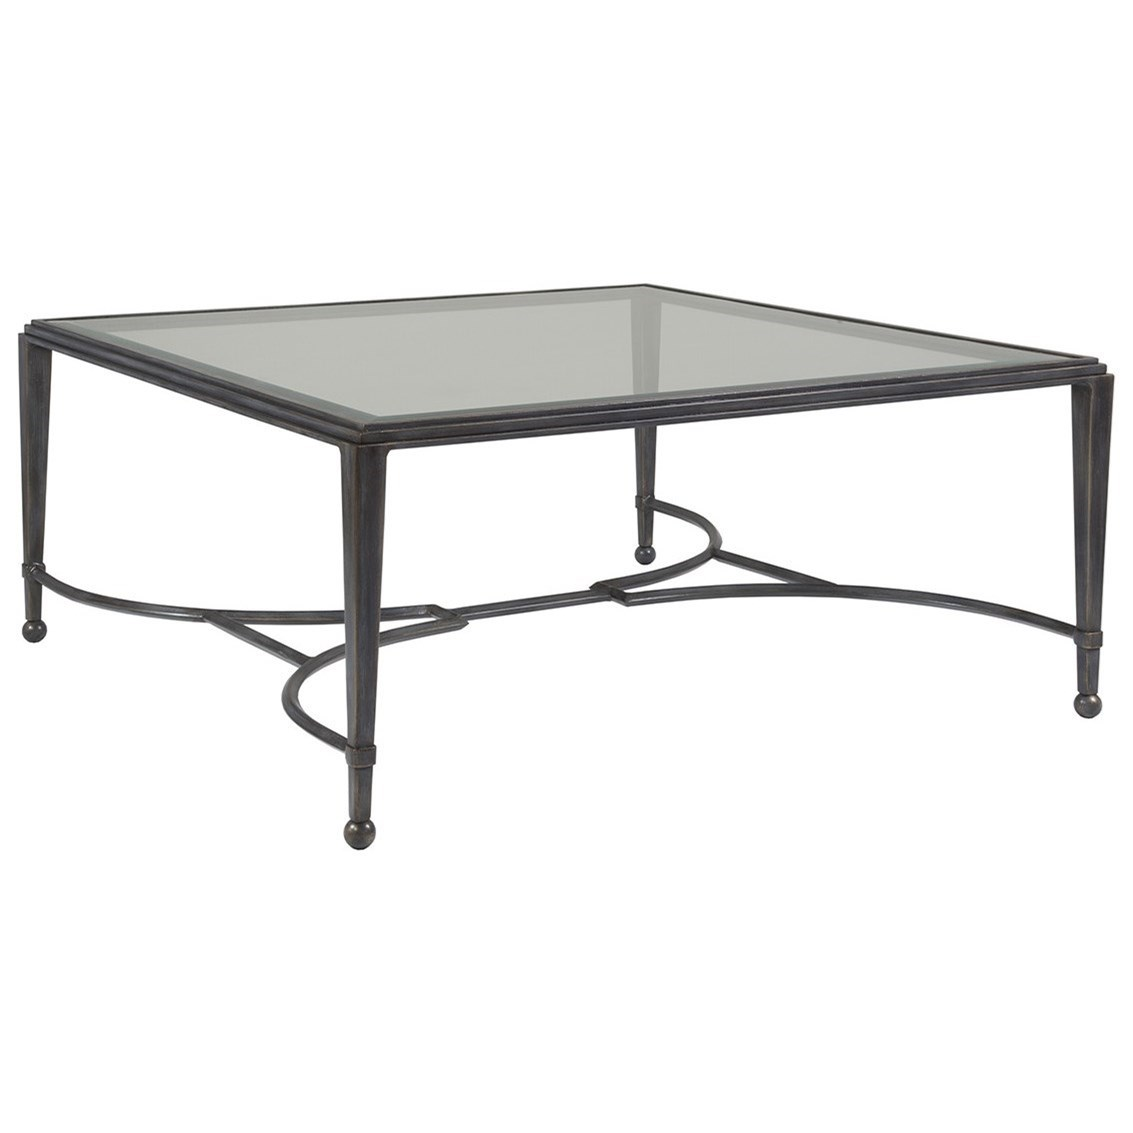 Metal Designs Sangiovese Square Cocktail Table by Artistica at Baer's Furniture